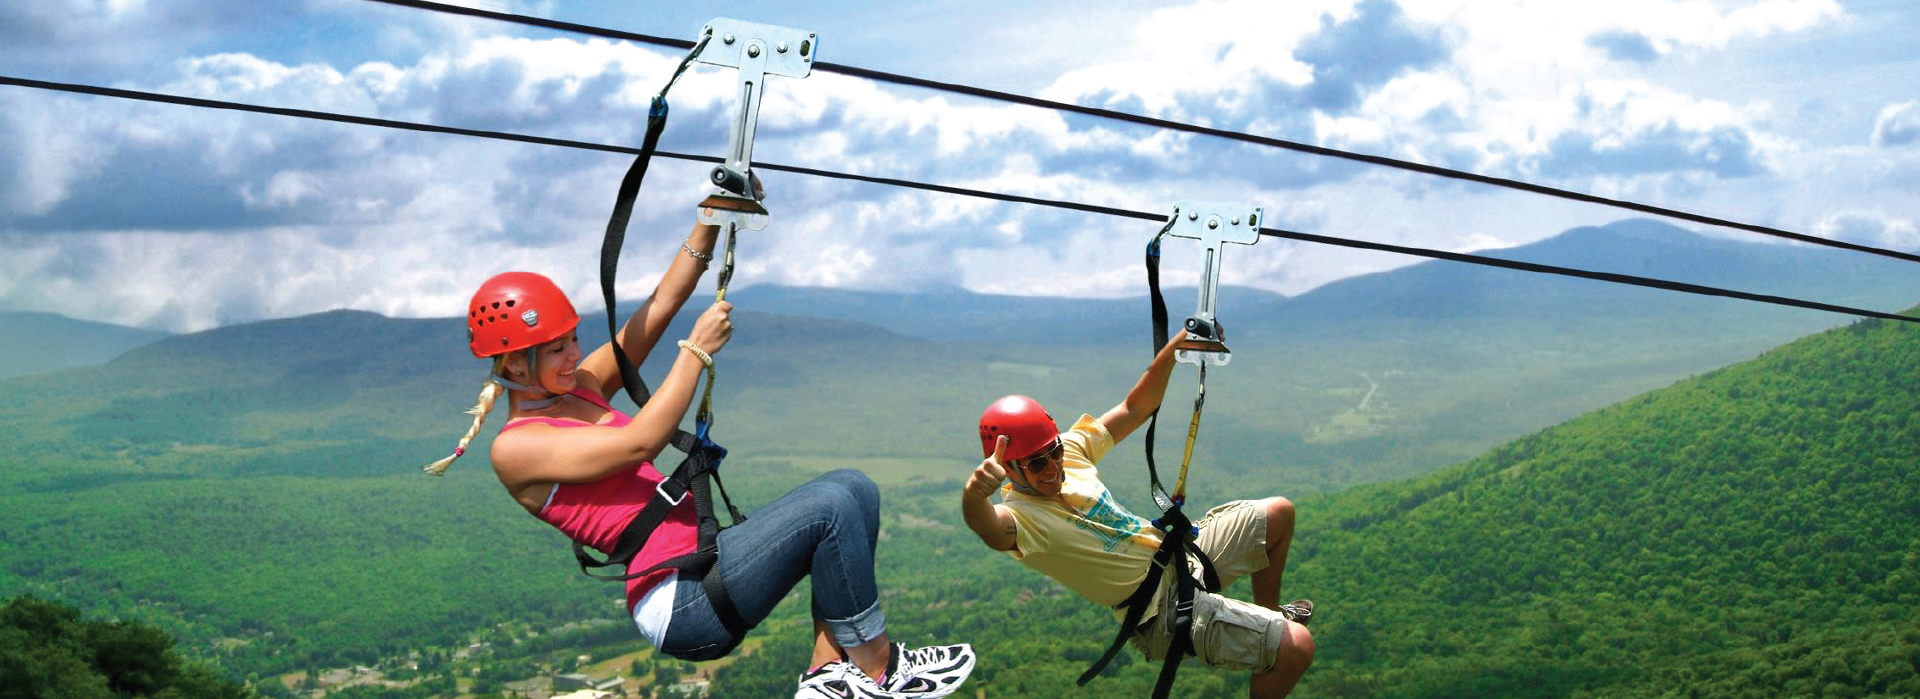 The zipline ride